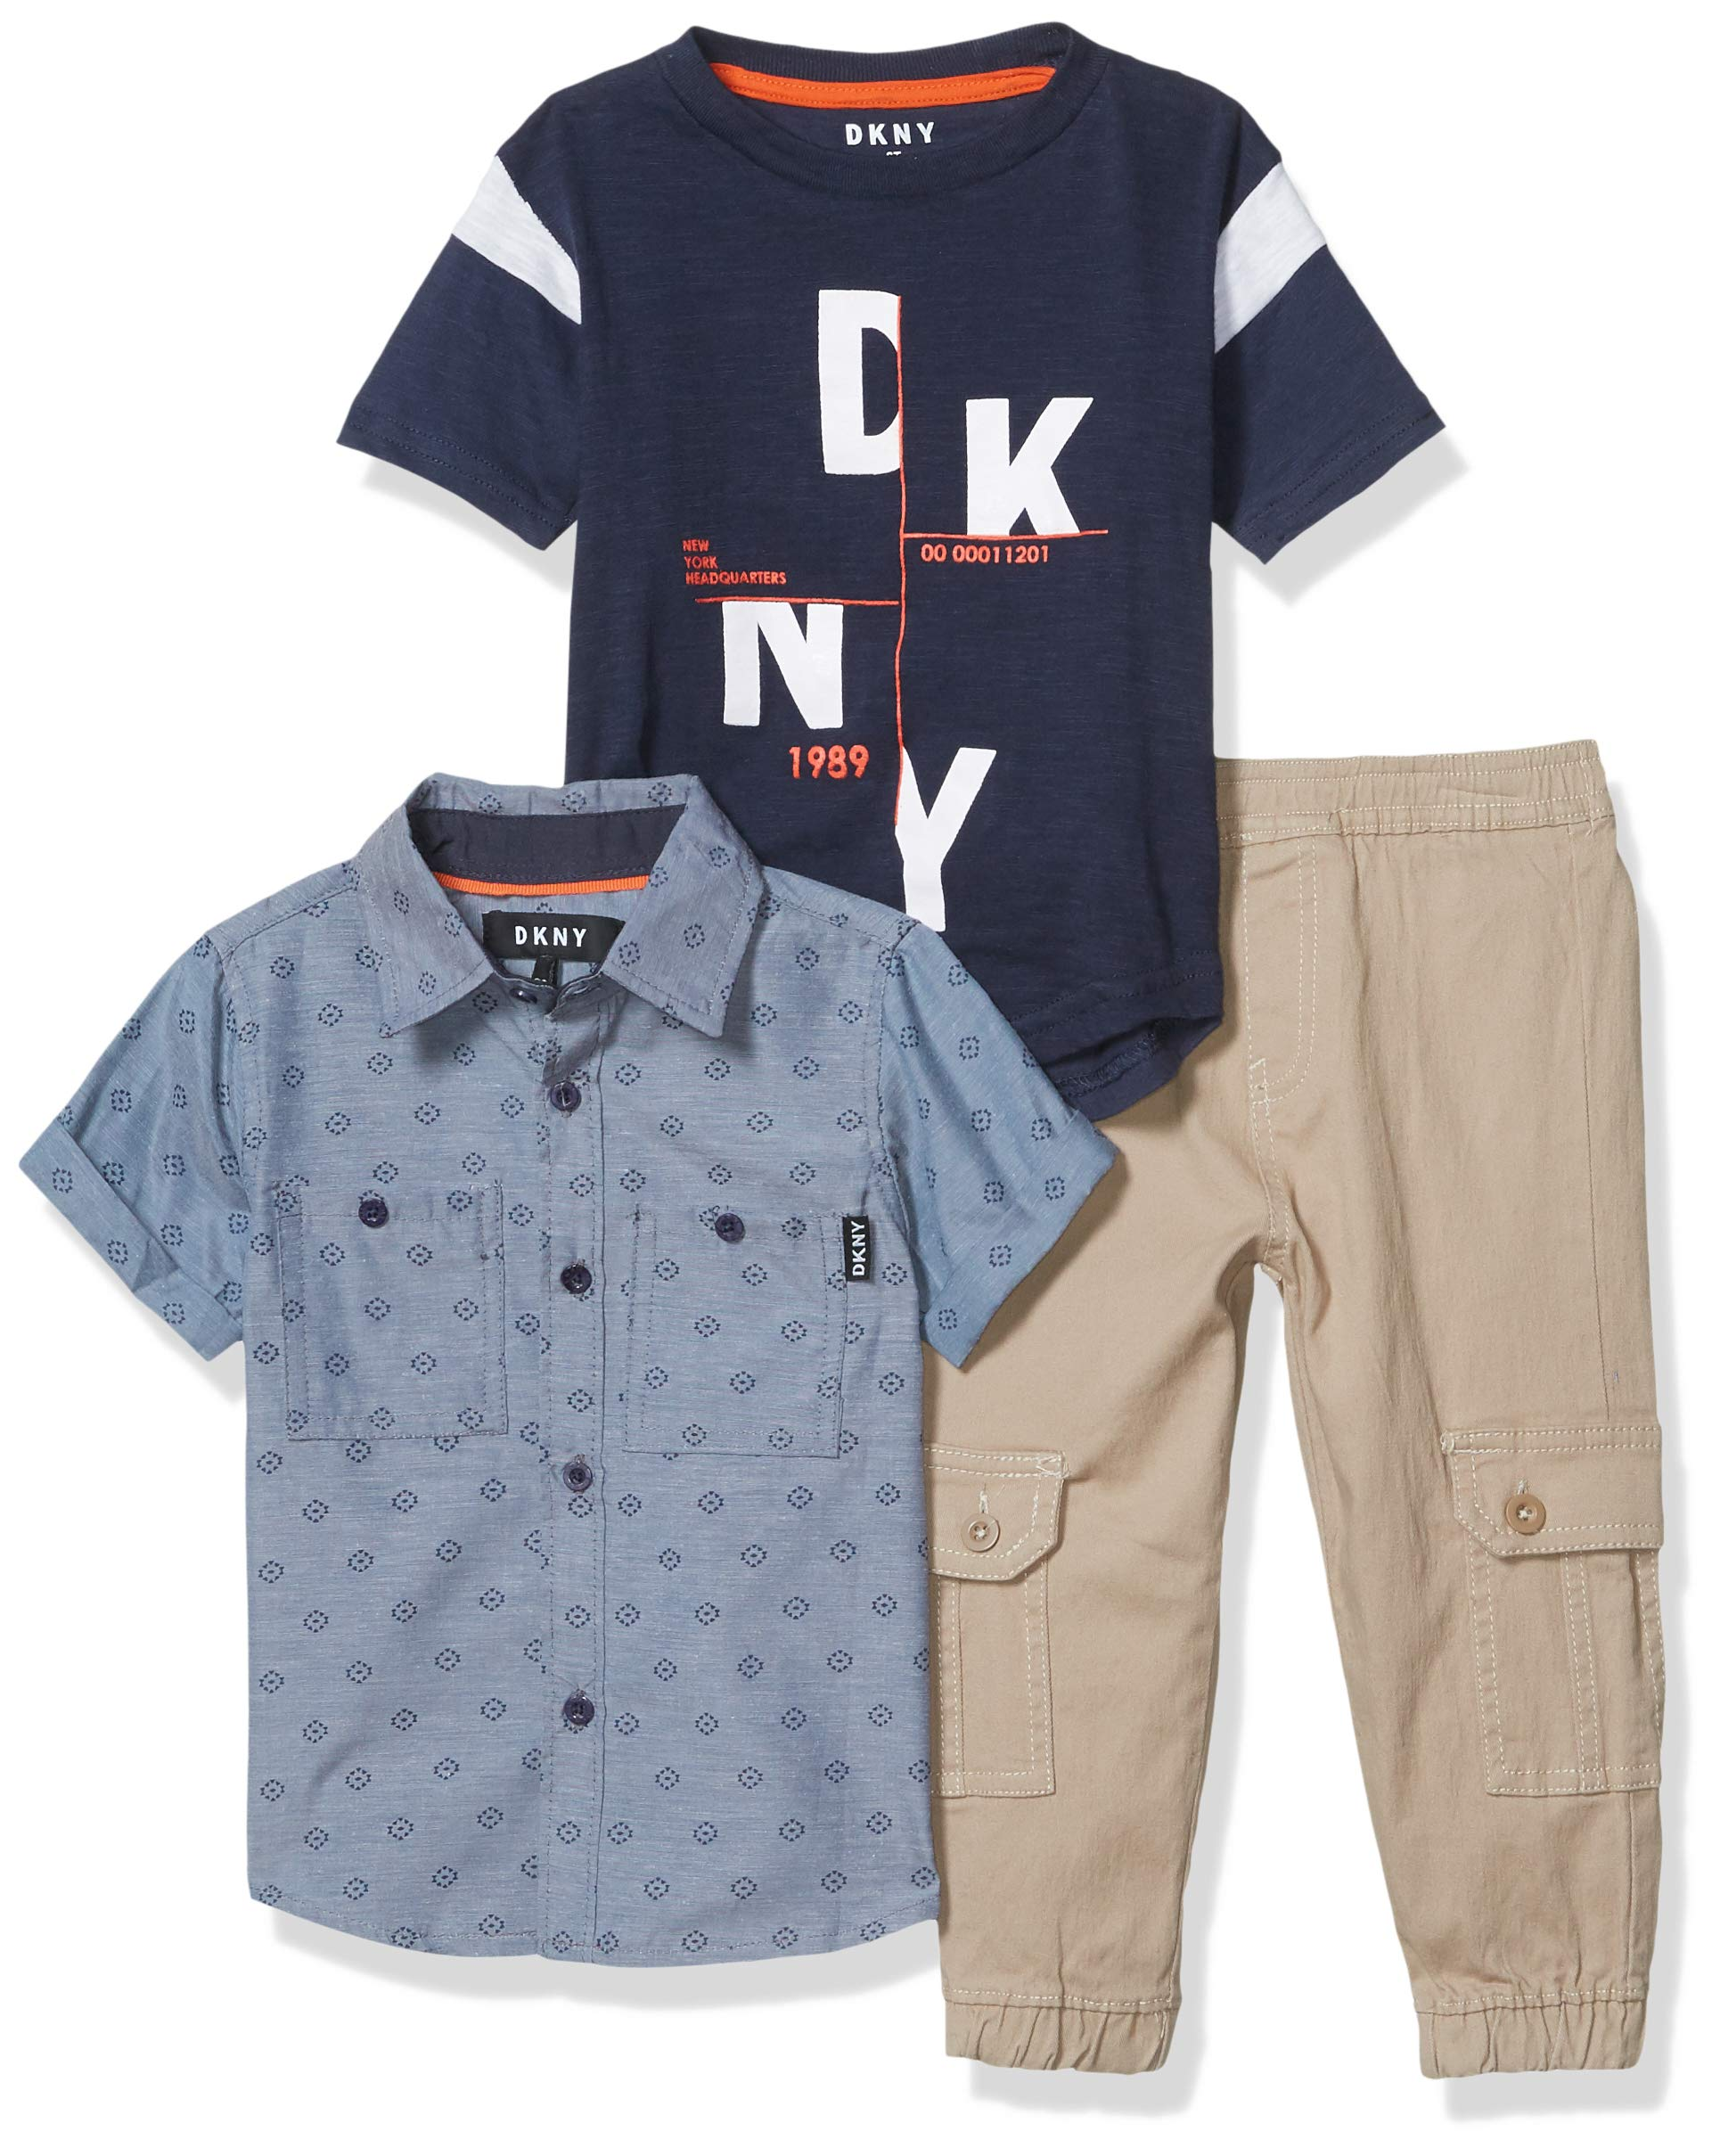 DKNY Boys' 3 Piece Set